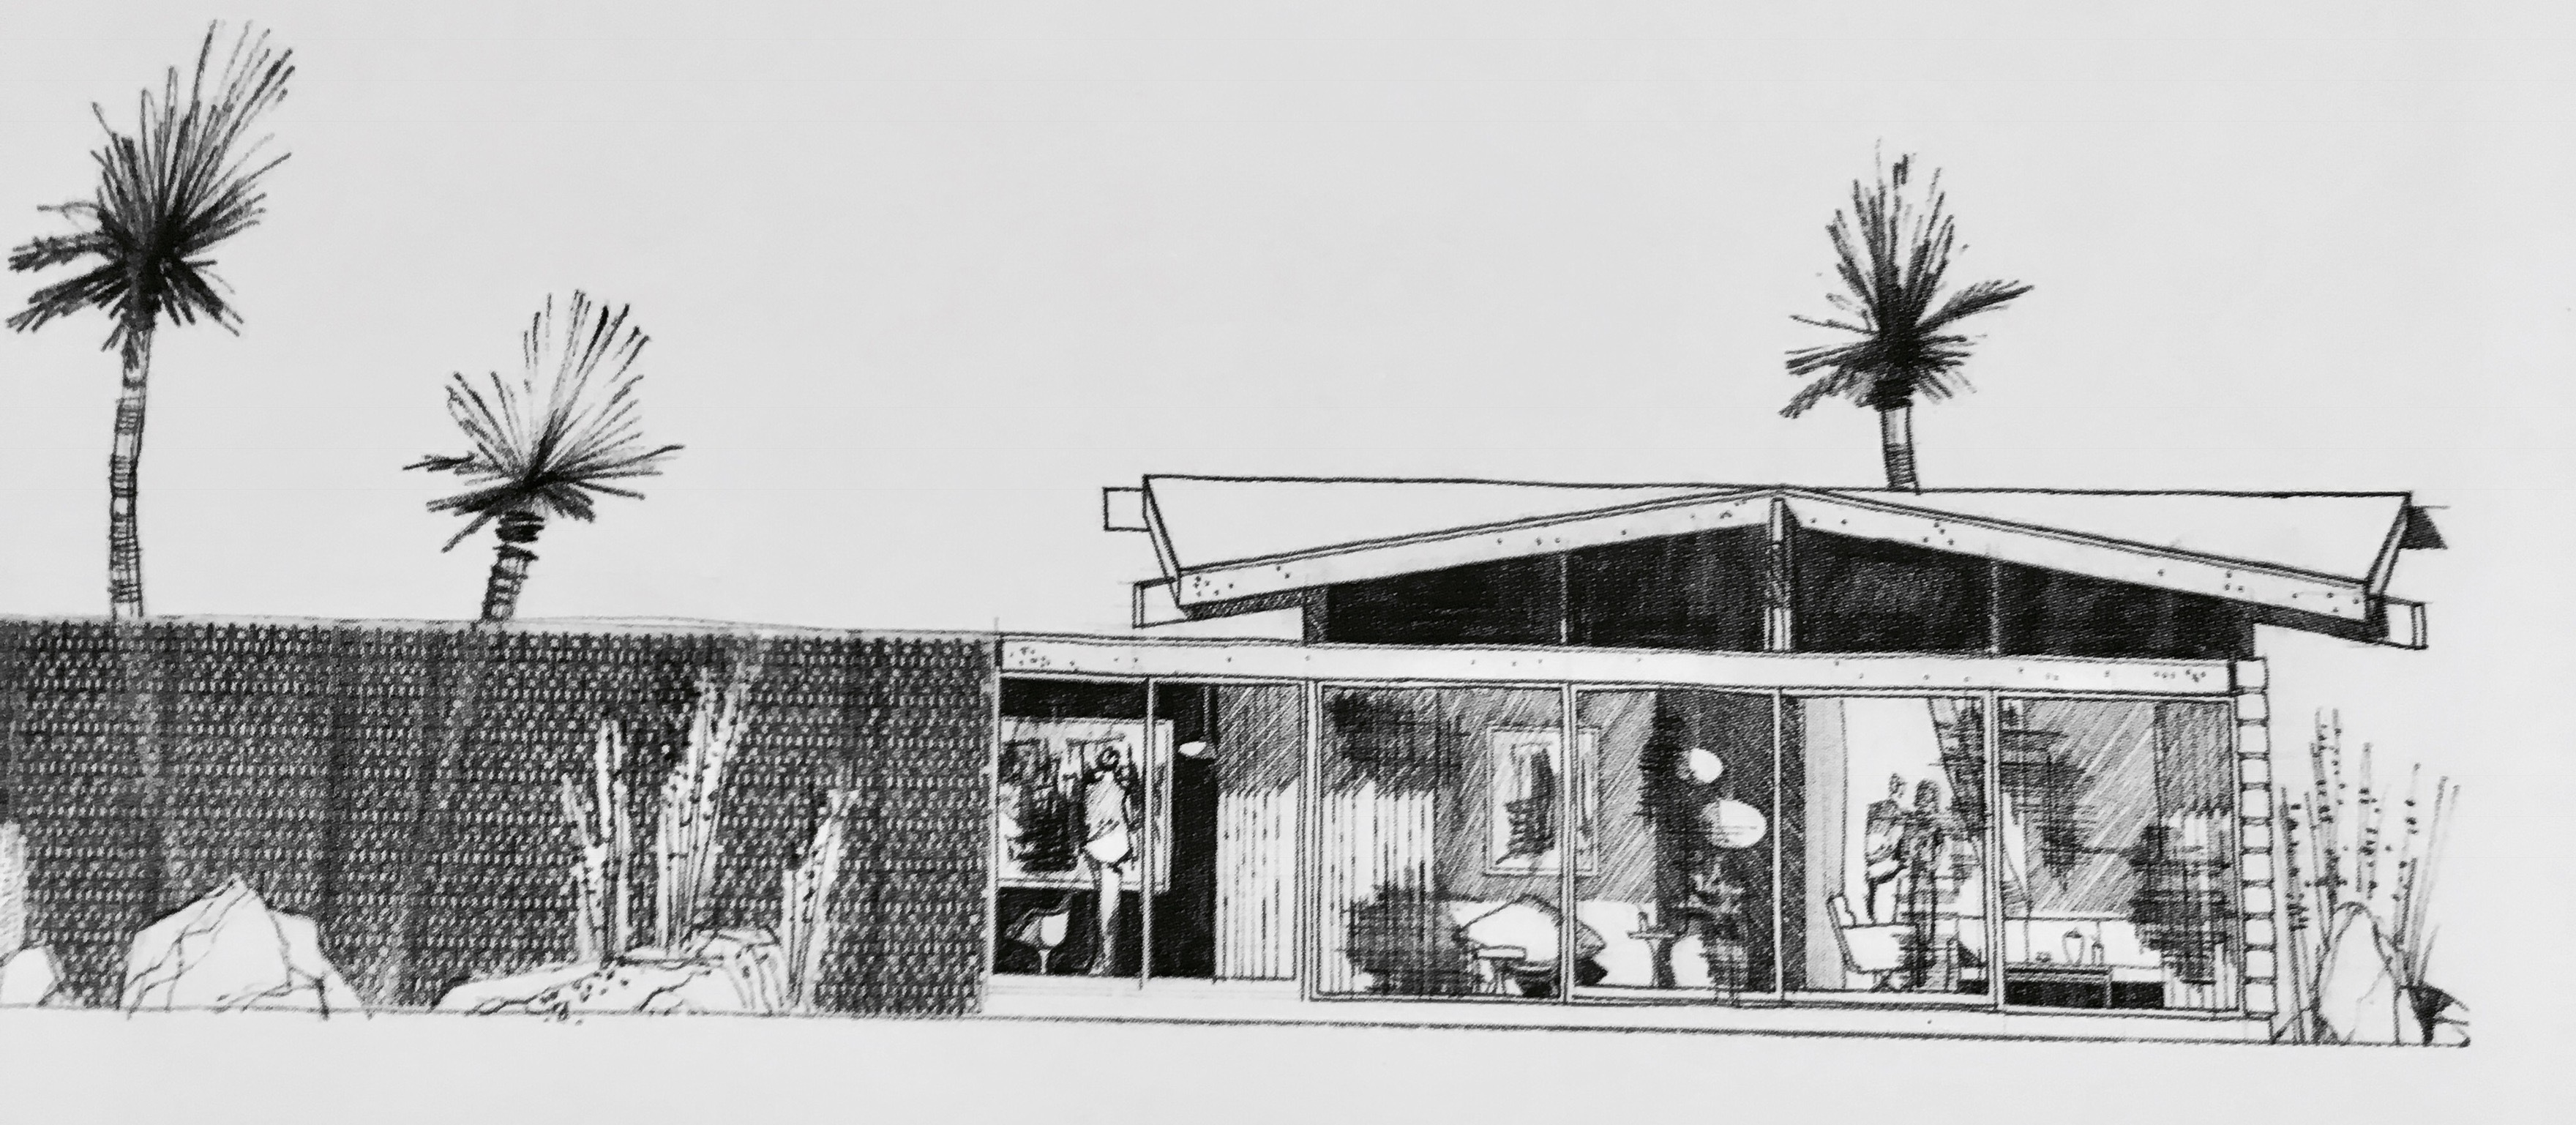 Artists Rendering, Estrella Moderna